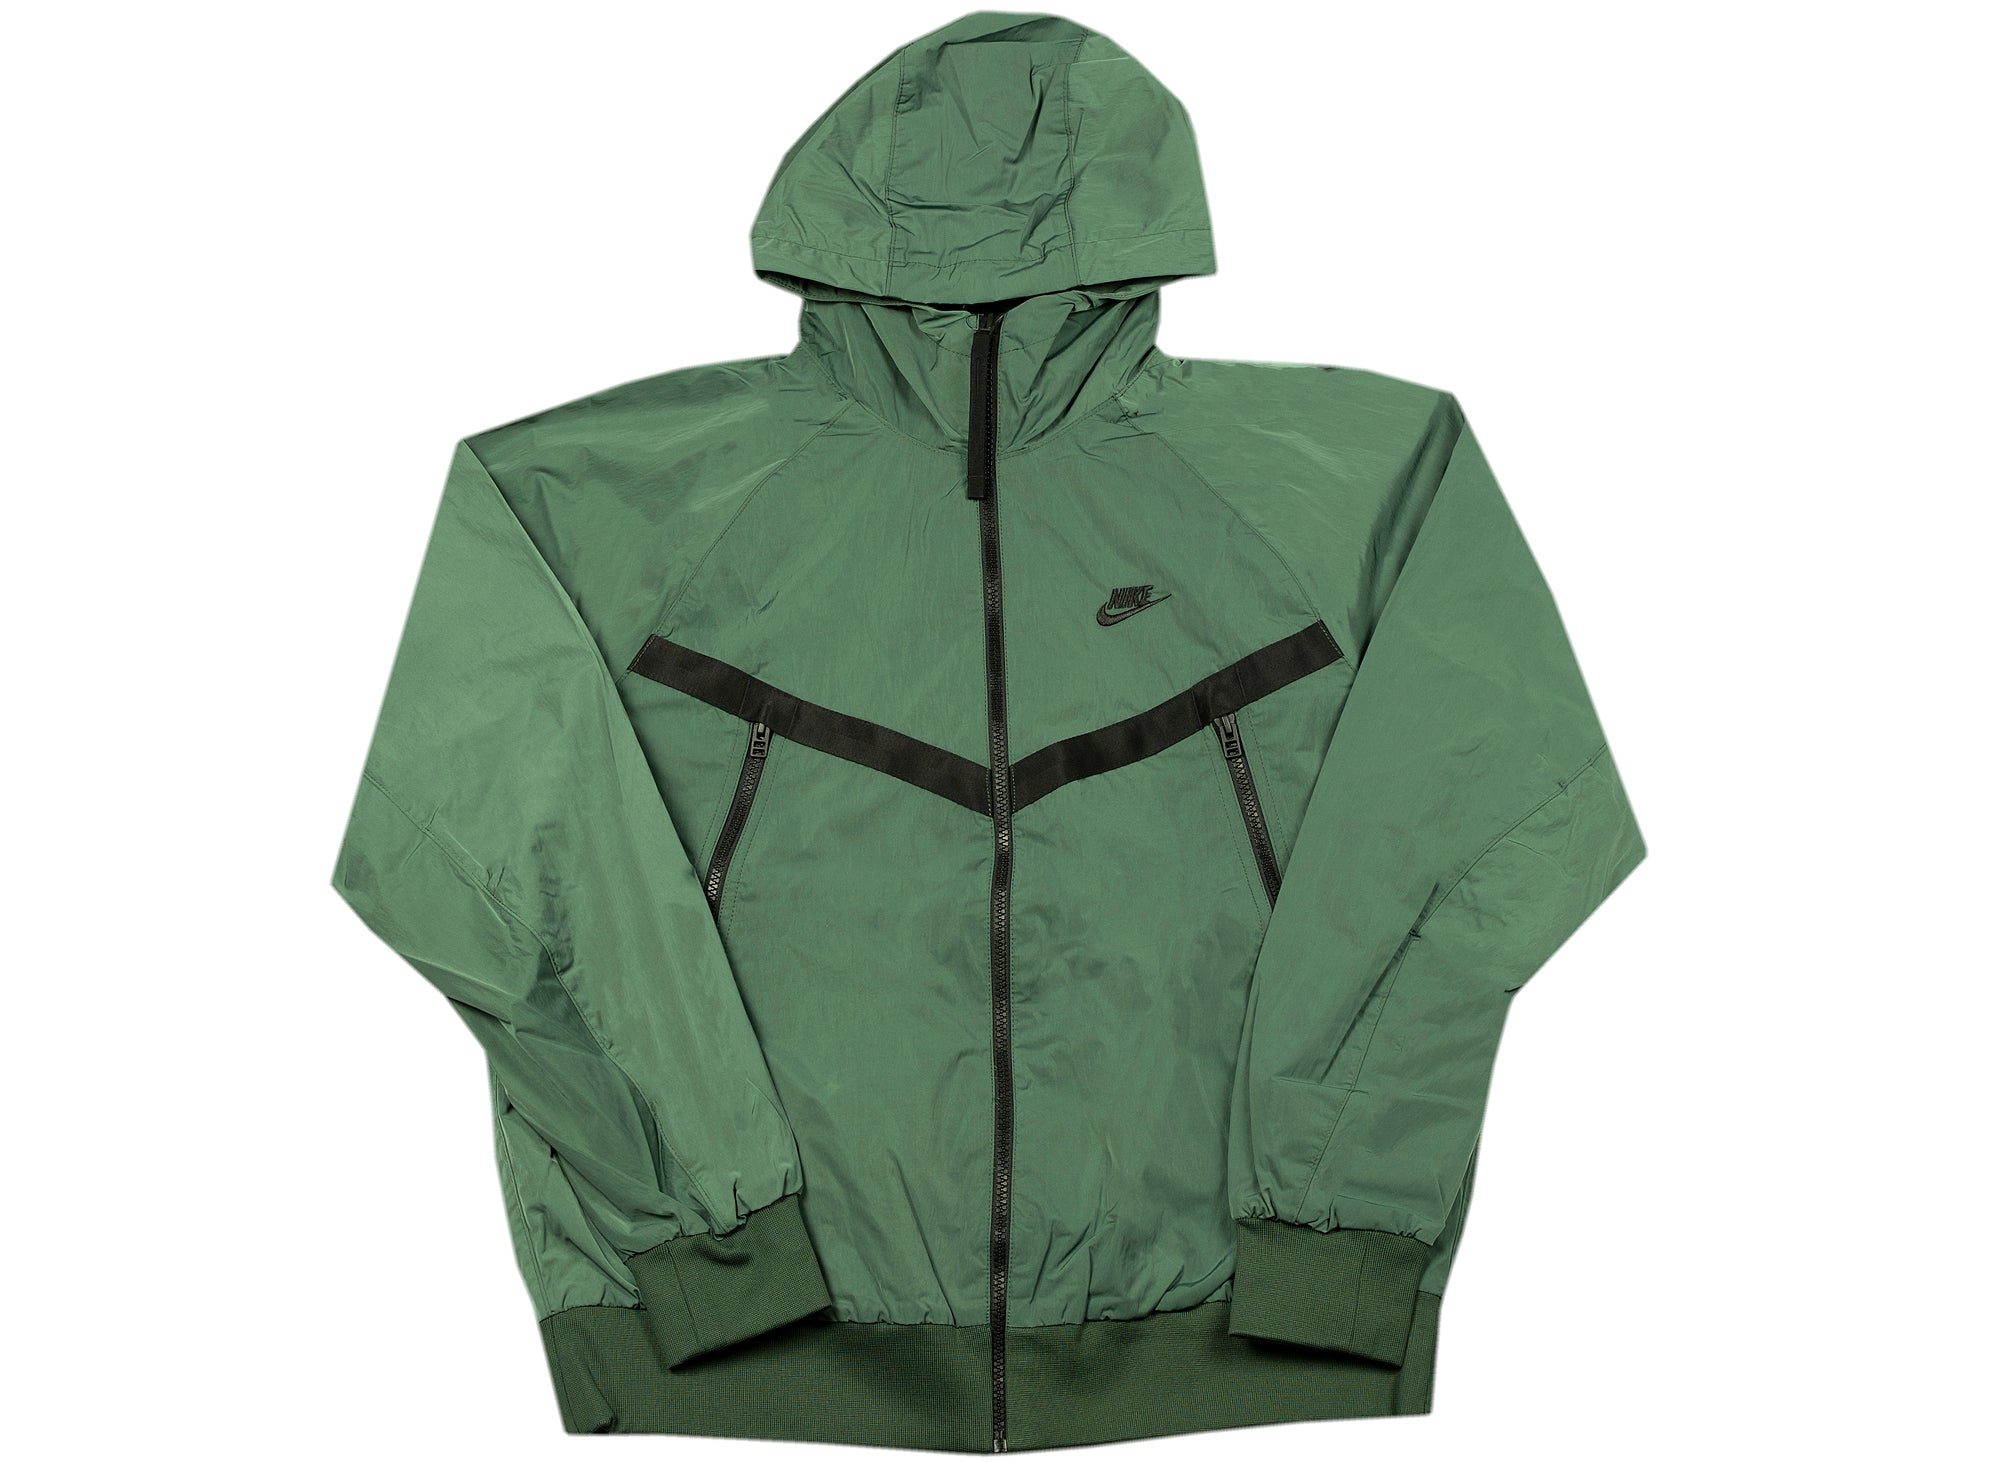 Nike Sportswear Windrunner Hooded Jacket xld